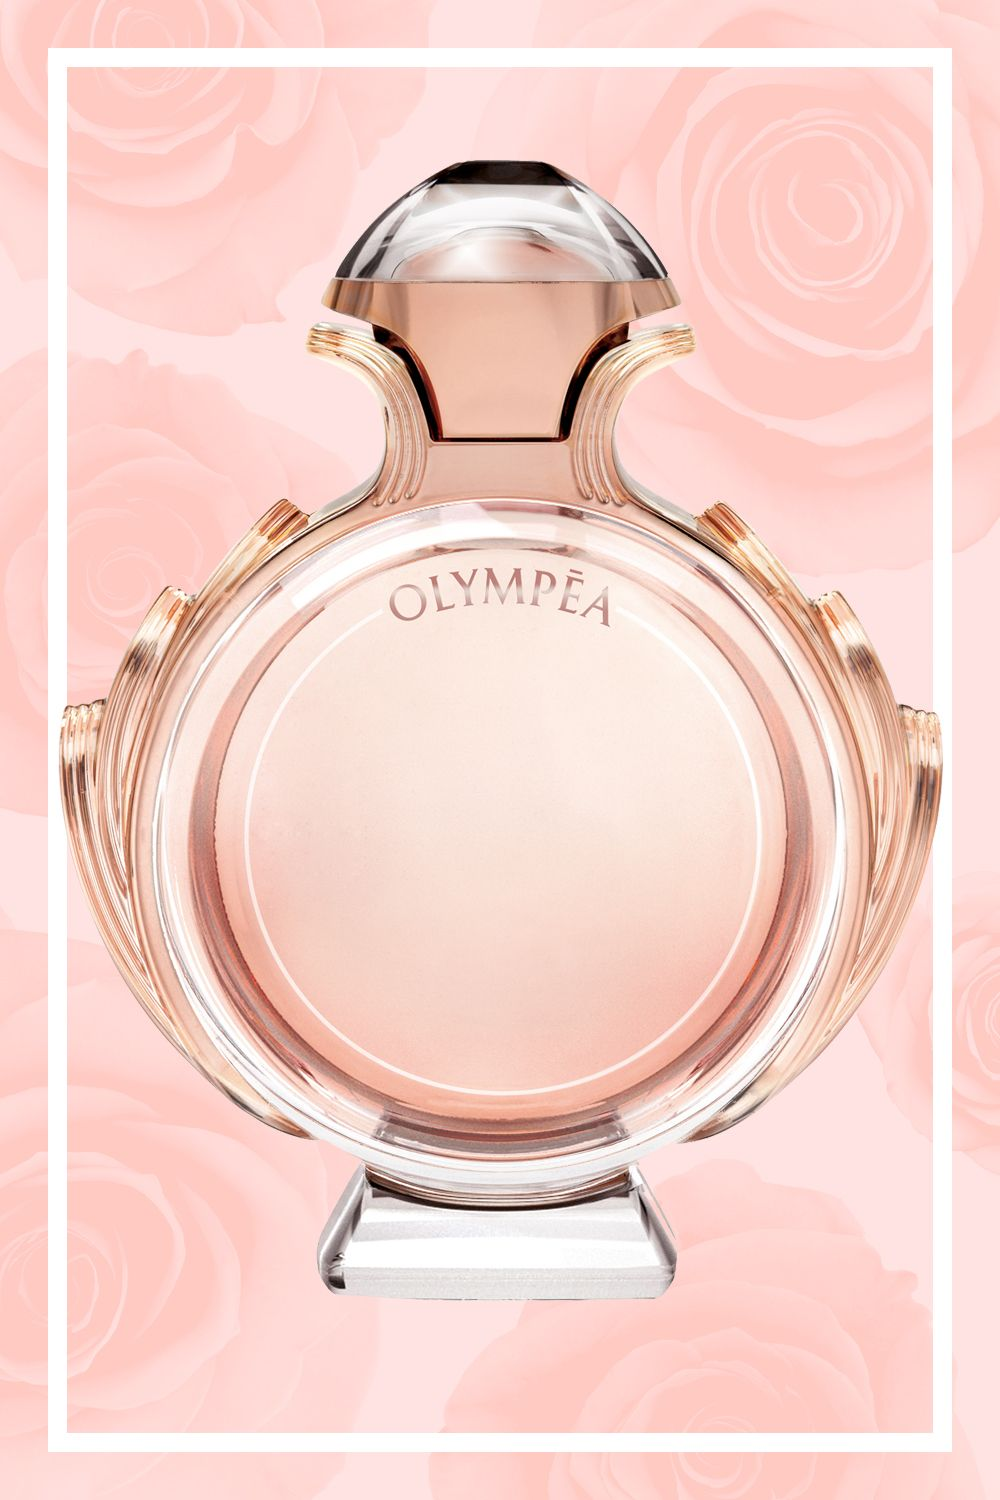 """<p>This luxe scent mixes floral and warm notes, thanks to jasmine, ginger lily, and vanilla. Translation: It's downright intoxicating. The tinted bottle also looks sophisticated sitting on top of your dresser. Did someone say #VanityGoals?<br></p><p><a href=""""http://www1.macys.com/shop/product/paco-rabanne-olympea-eau-de-parfum-spray-2.7-oz-a-macys-exclusive?ID=2595205&cm_mmc=crosspromo-_-olympea-_-cosmo-_-olympea-eau-de-parfum_04152016_05052016"""" target=""""_blank""""><em>Paco Rabanne Olympéa Fragrance</em></a><em>, $96</em></p>"""